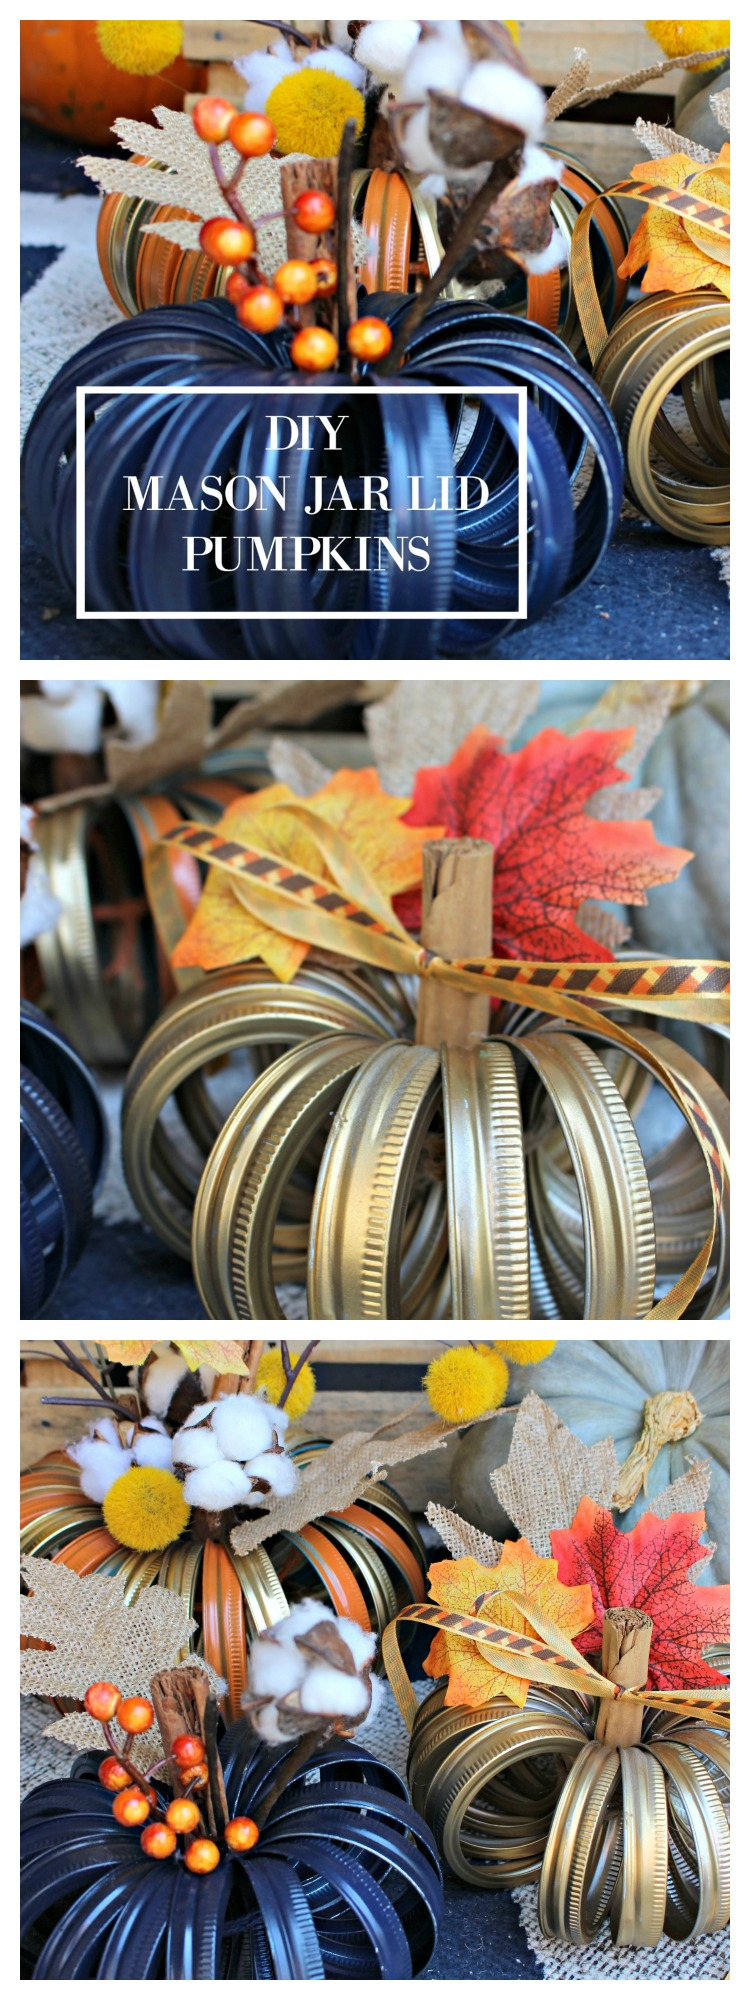 DIY Mason Jar Lid Pumpkins are Simple Fall Decor Crafts You can Make at Home!